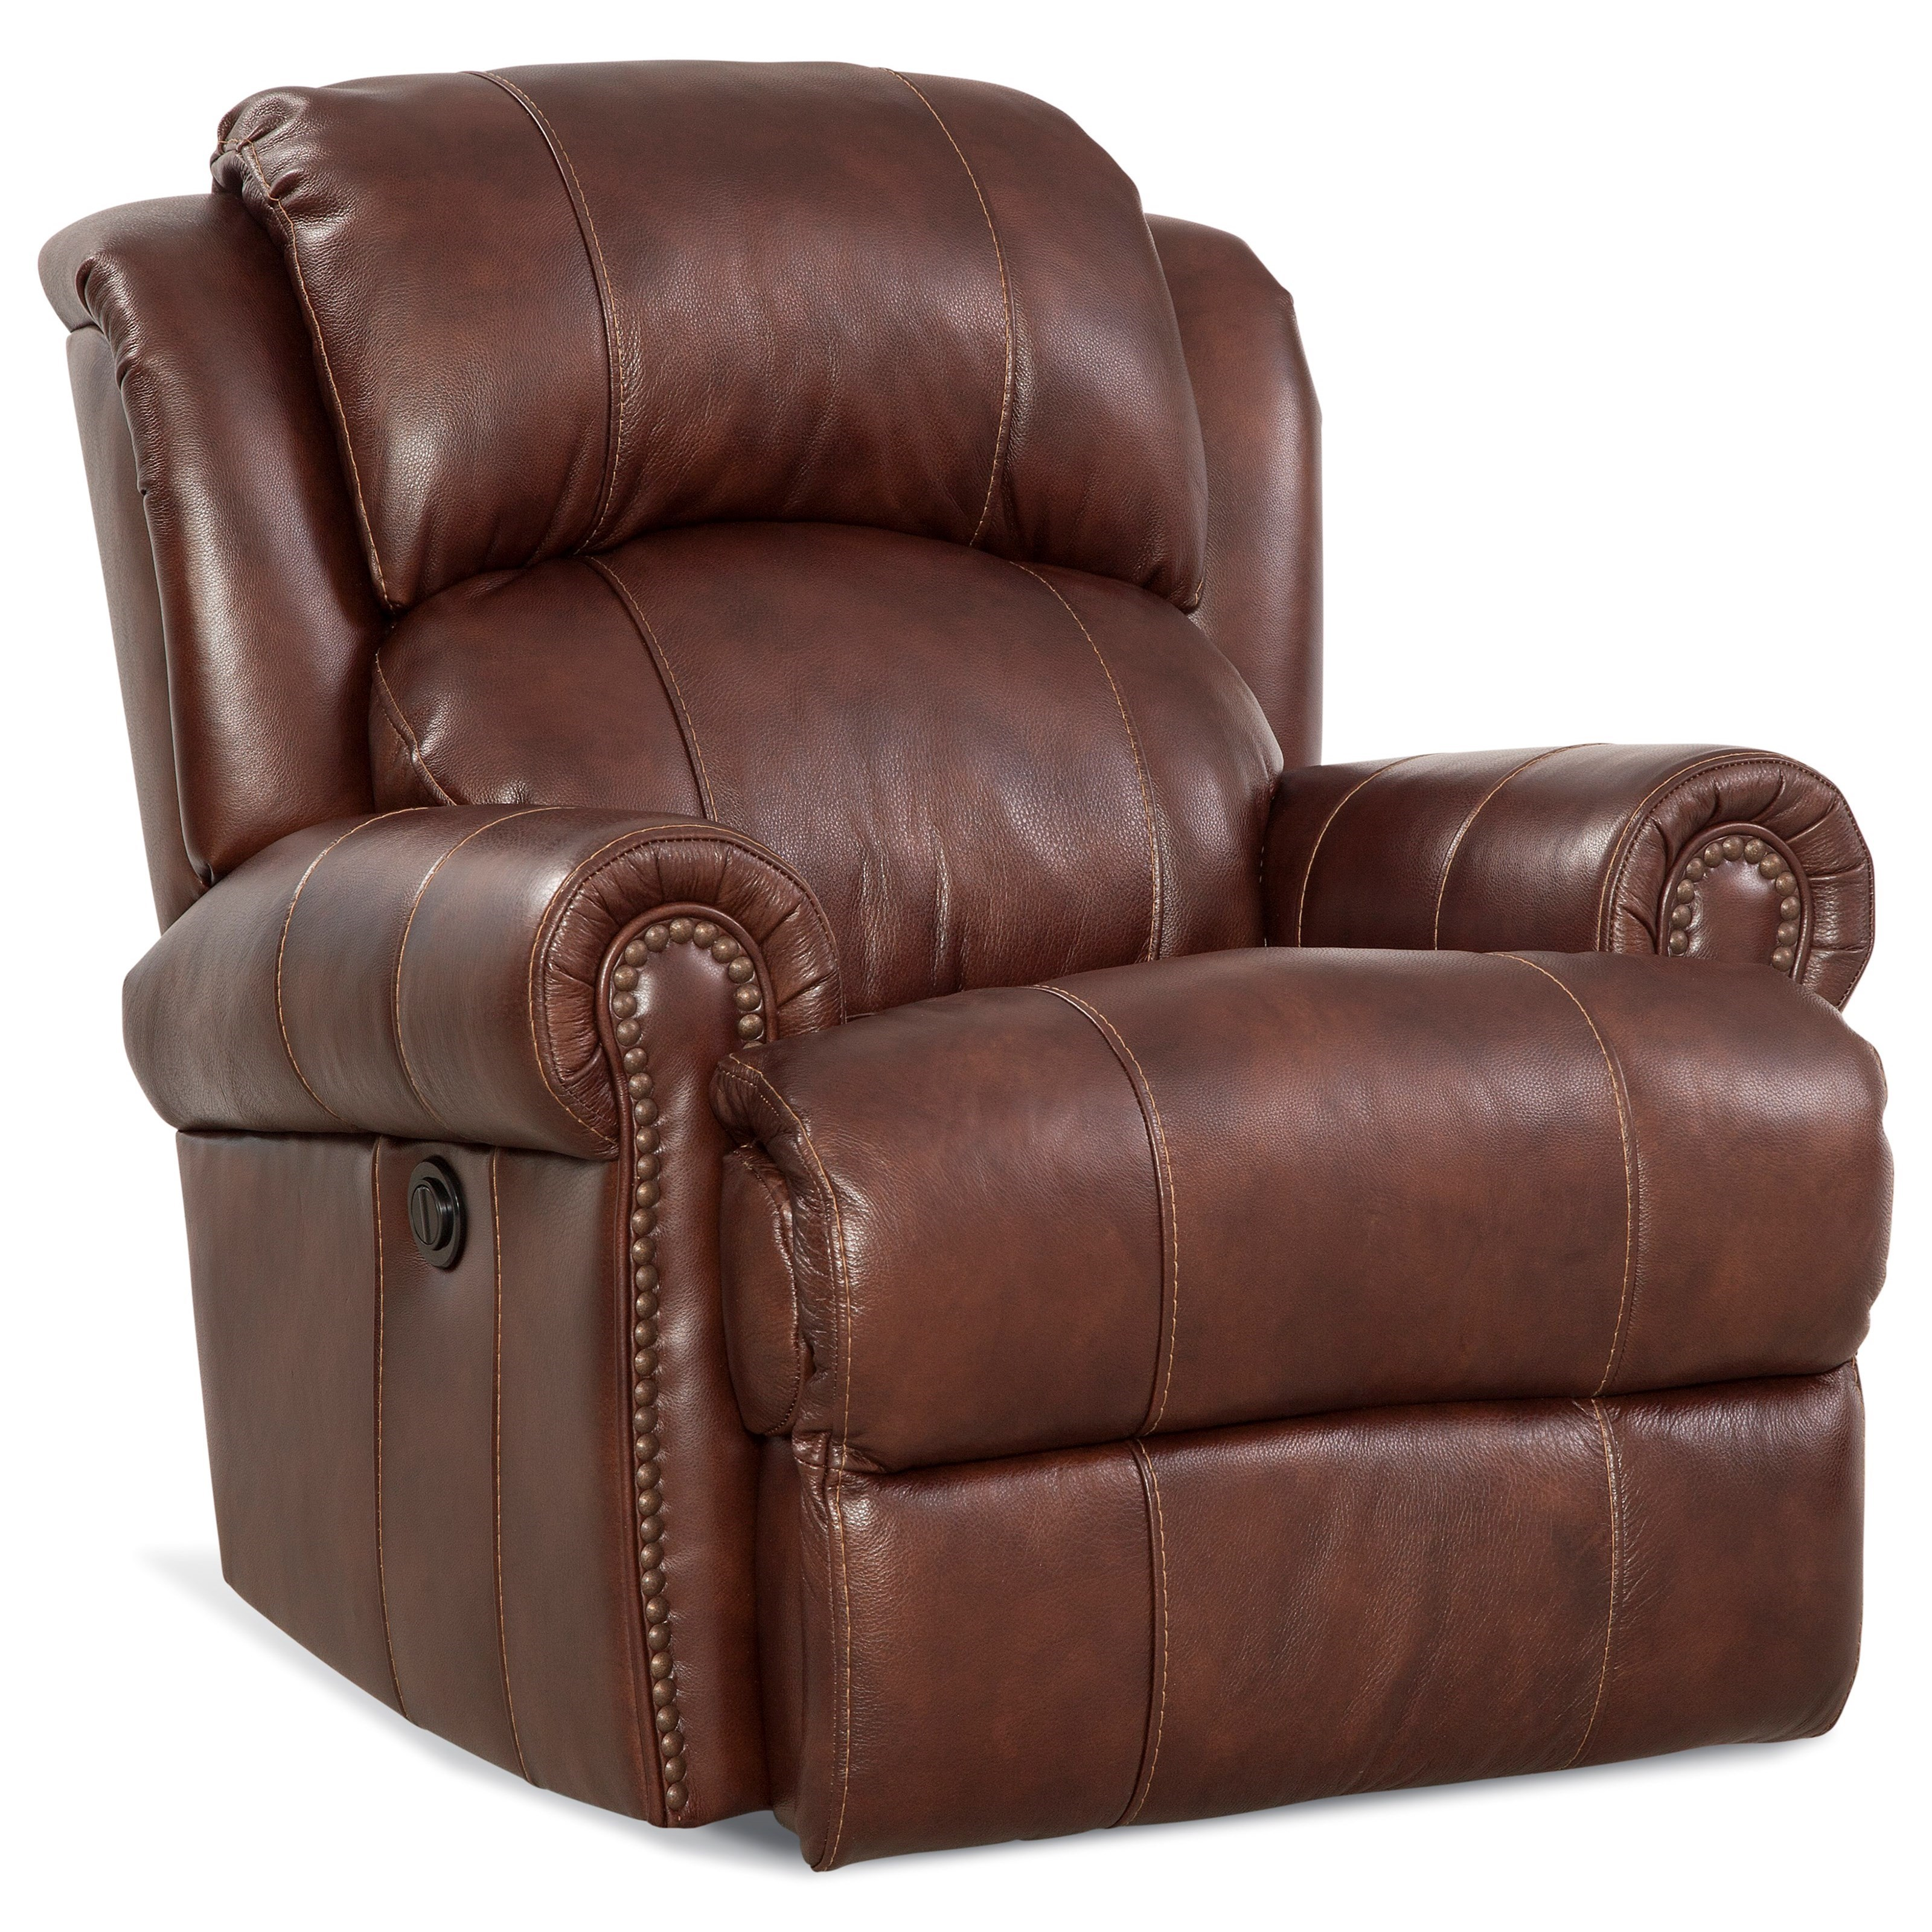 Comfort Living 164 Collection Rocker Recliner - Item Number: 164-91-21